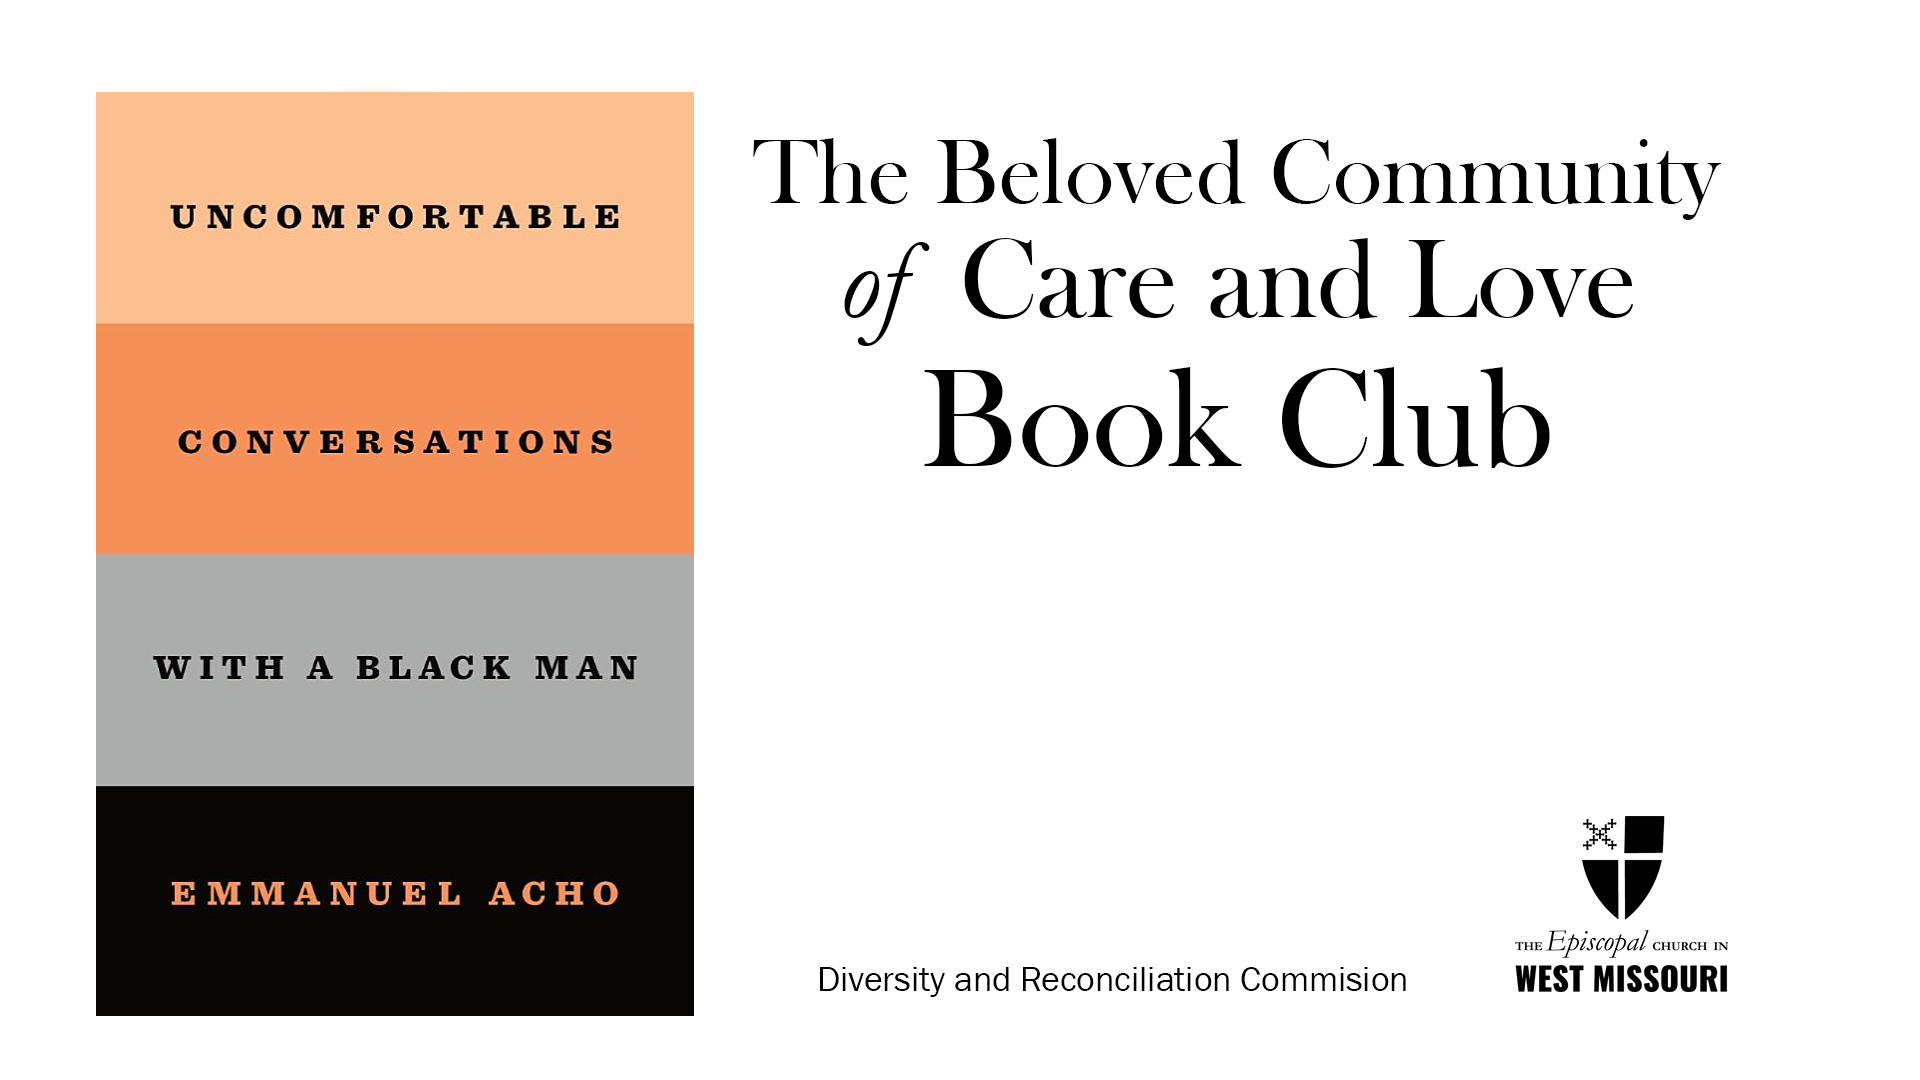 Diversity and Reconciliation Commission's third online series of book study sessions